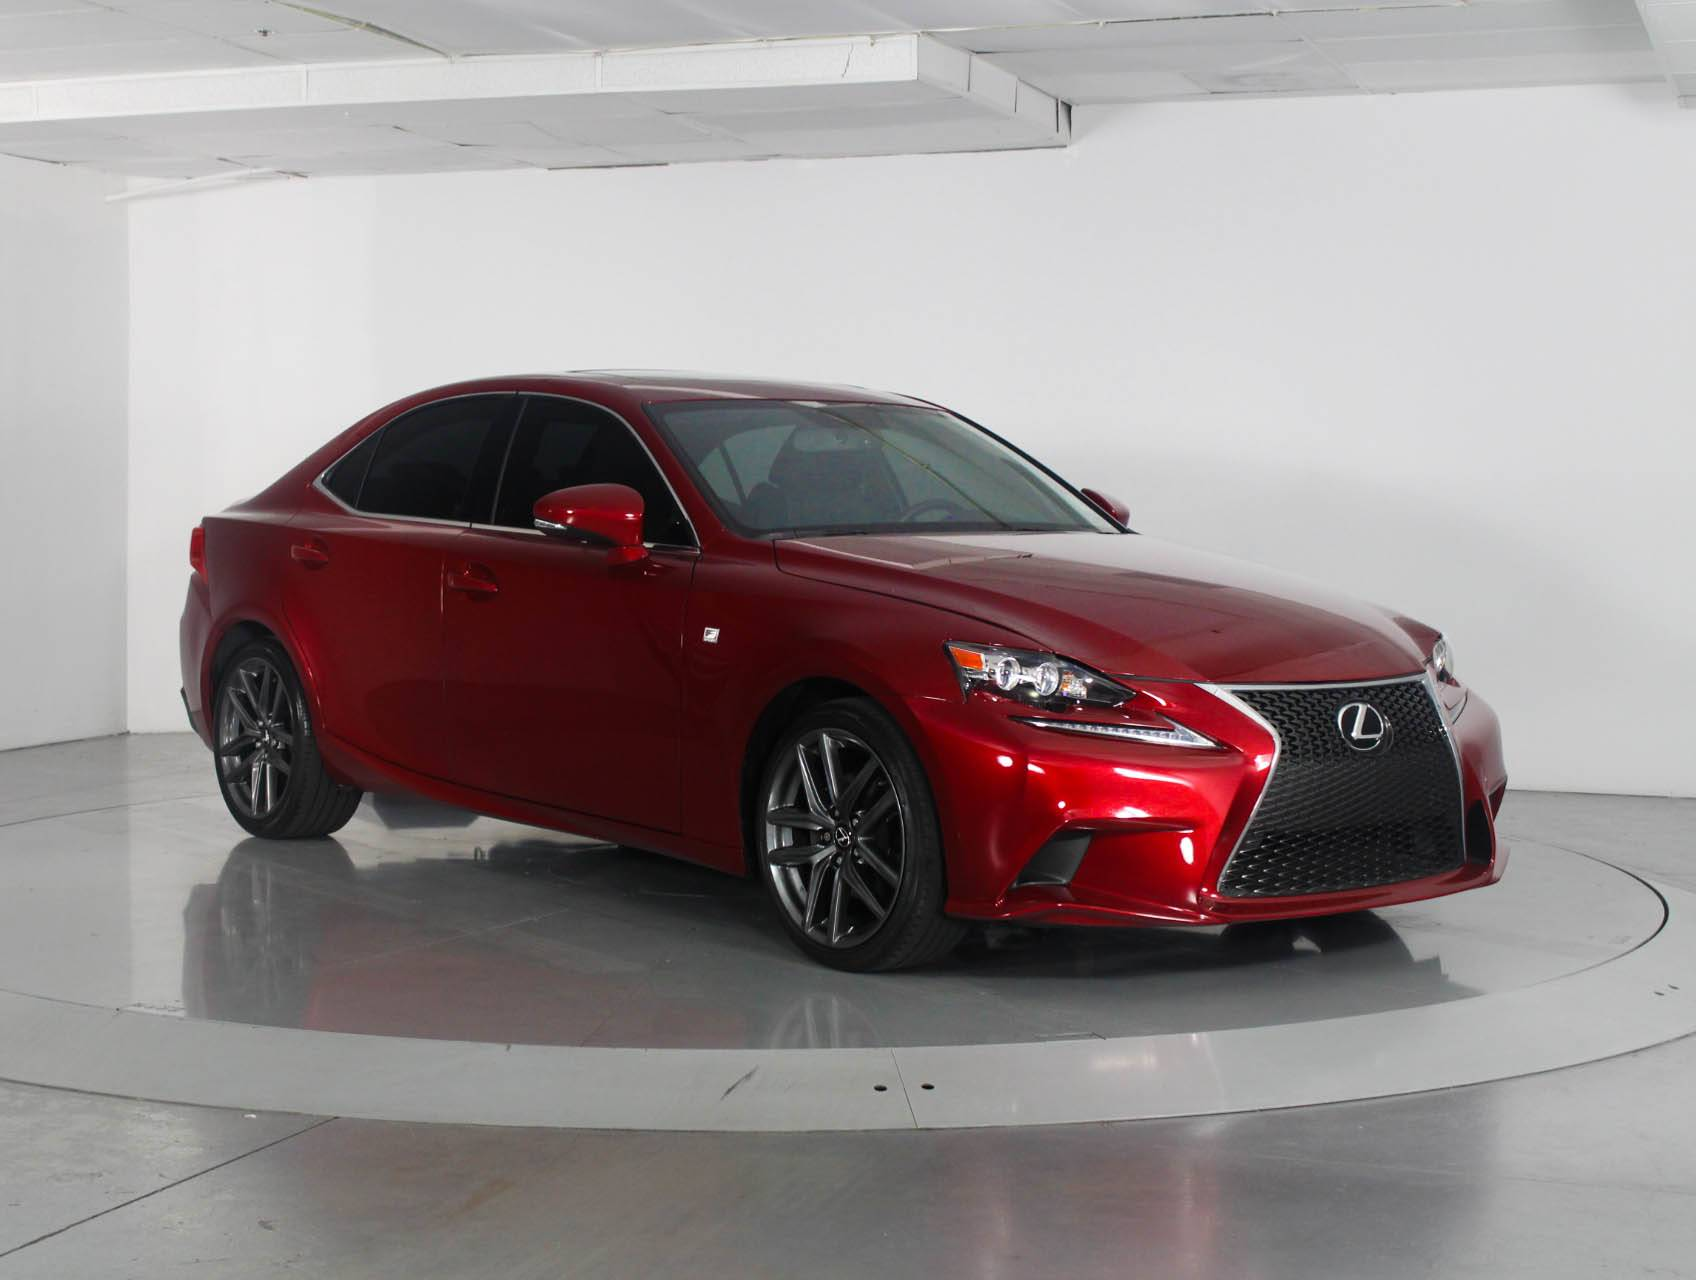 Used 2015 LEXUS IS 250 F SPORT Sedan for sale in WEST PALM FL